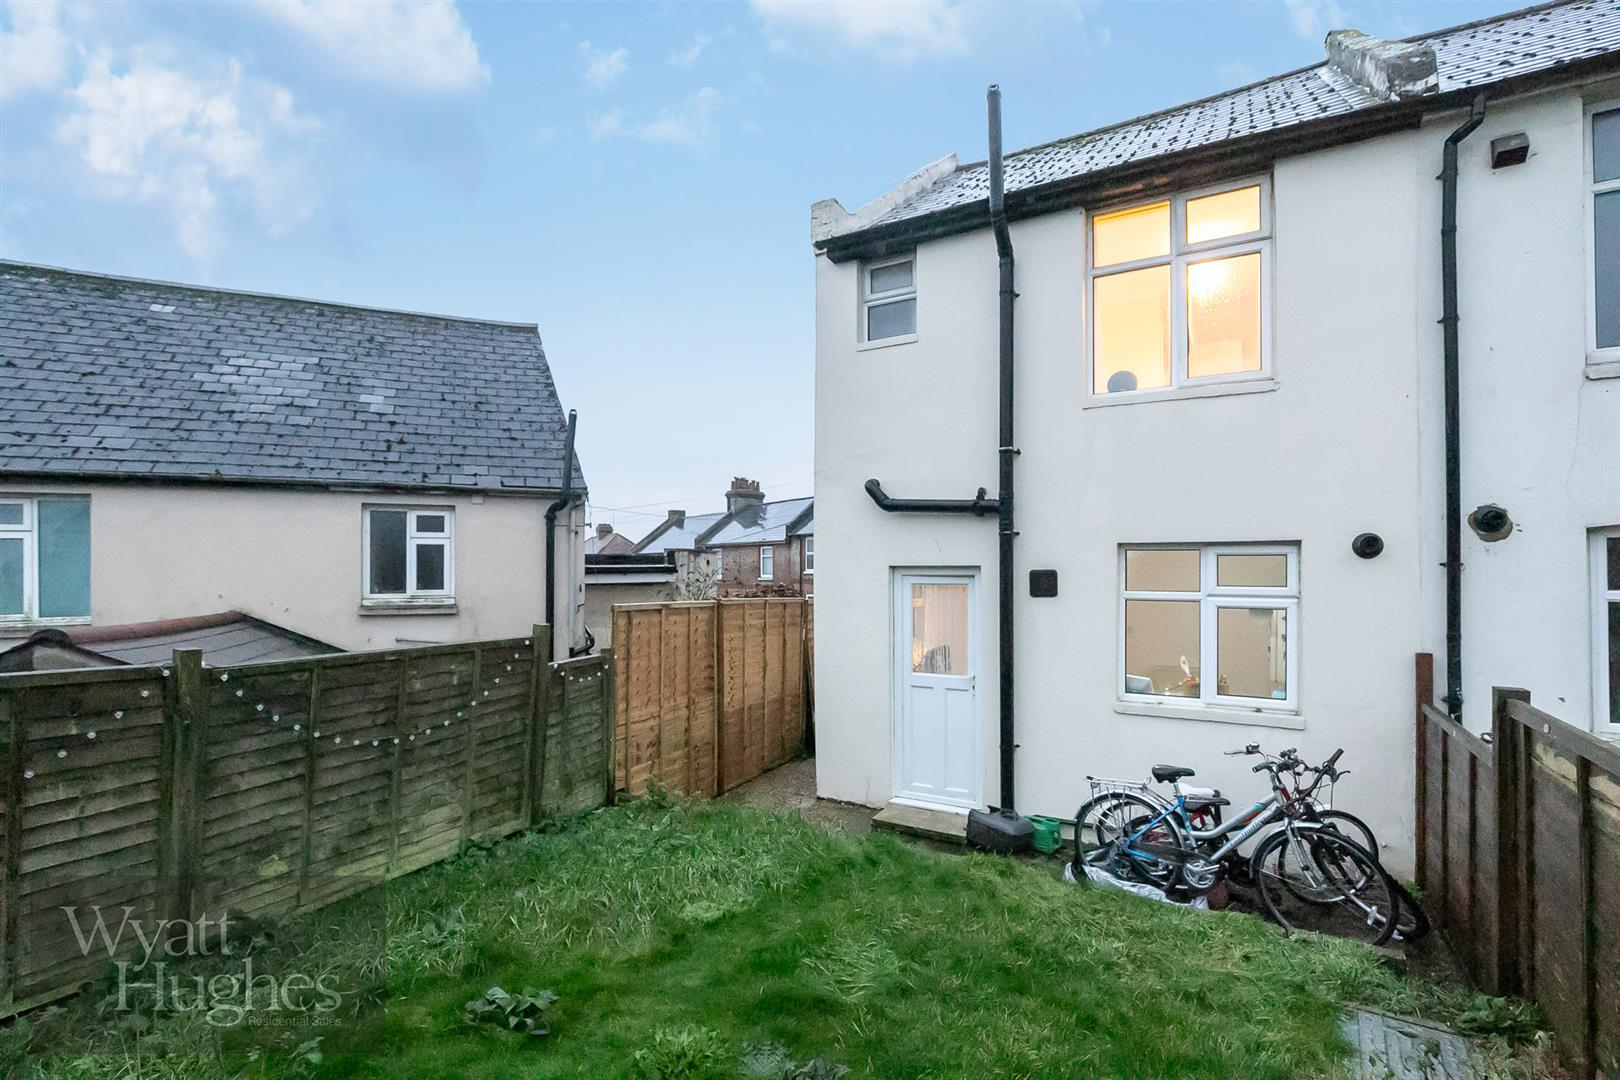 2 bed end of terrace house for sale in Old Church Road, St. Leonards-On-Sea, TN38